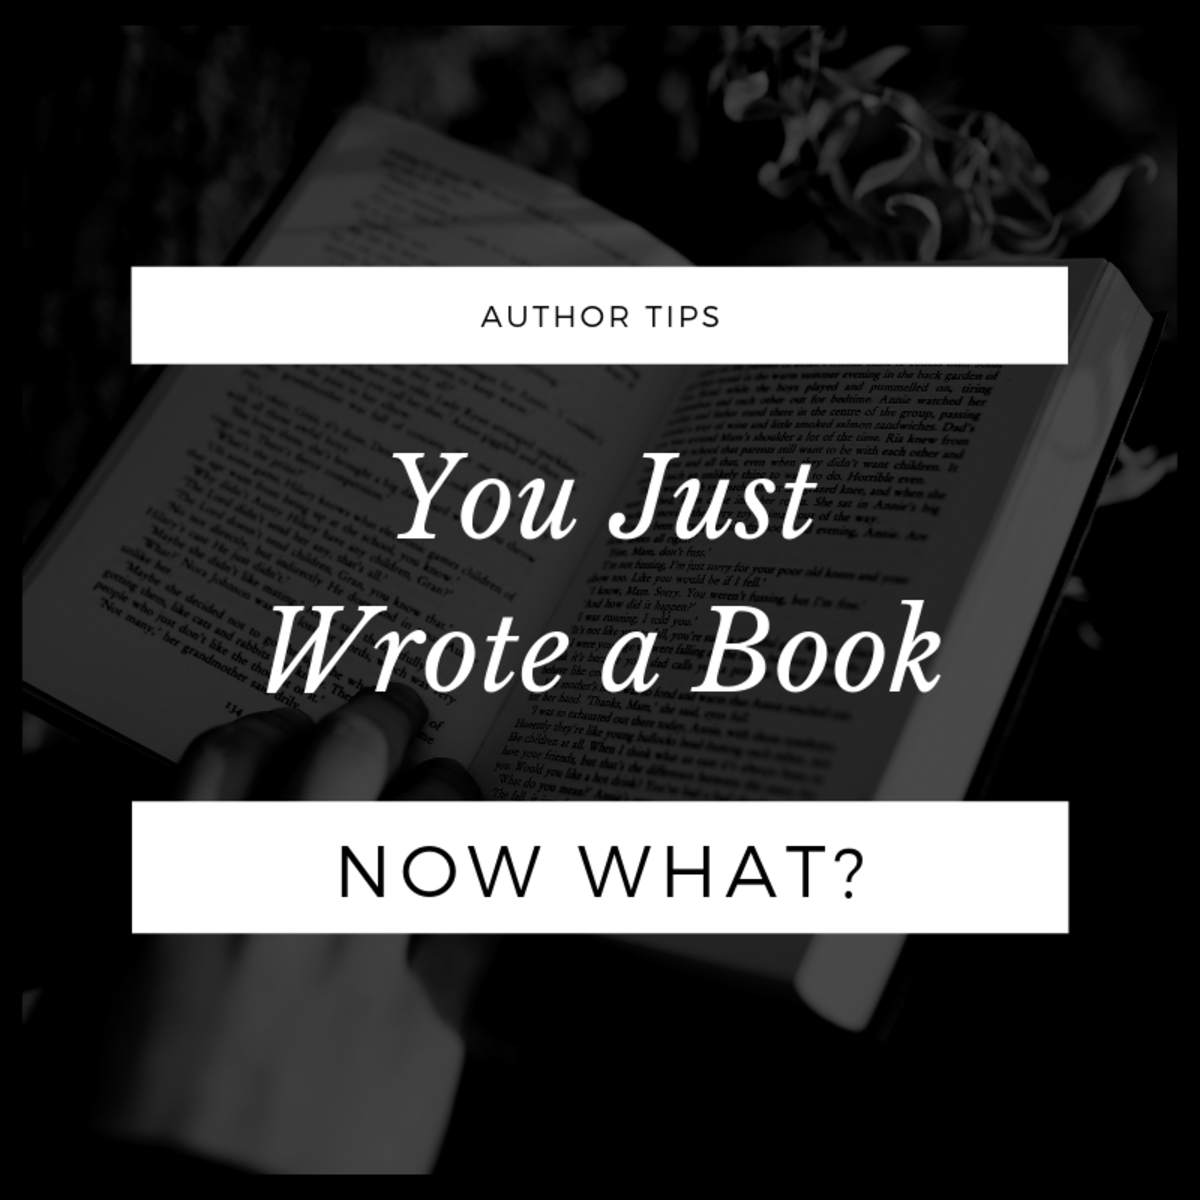 You Just Wrote a Book. Now What?